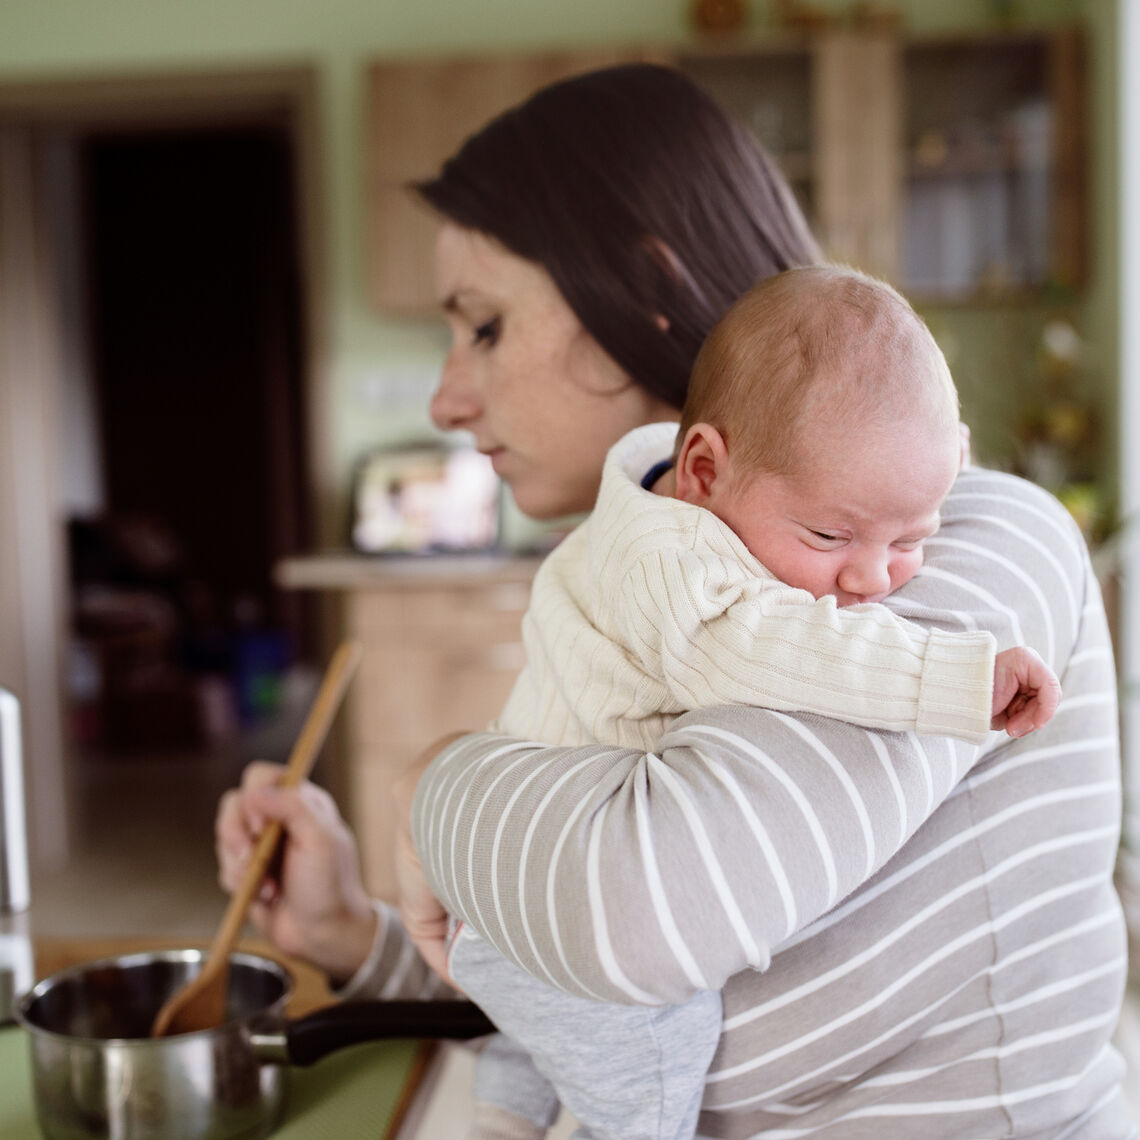 Beautiful young mother at home in the kitchen holding her newborn baby son, cooking, mixing something in pan (Beautiful young mother at home in the kitchen holding her newborn baby son, cooking, mixing something in pan.